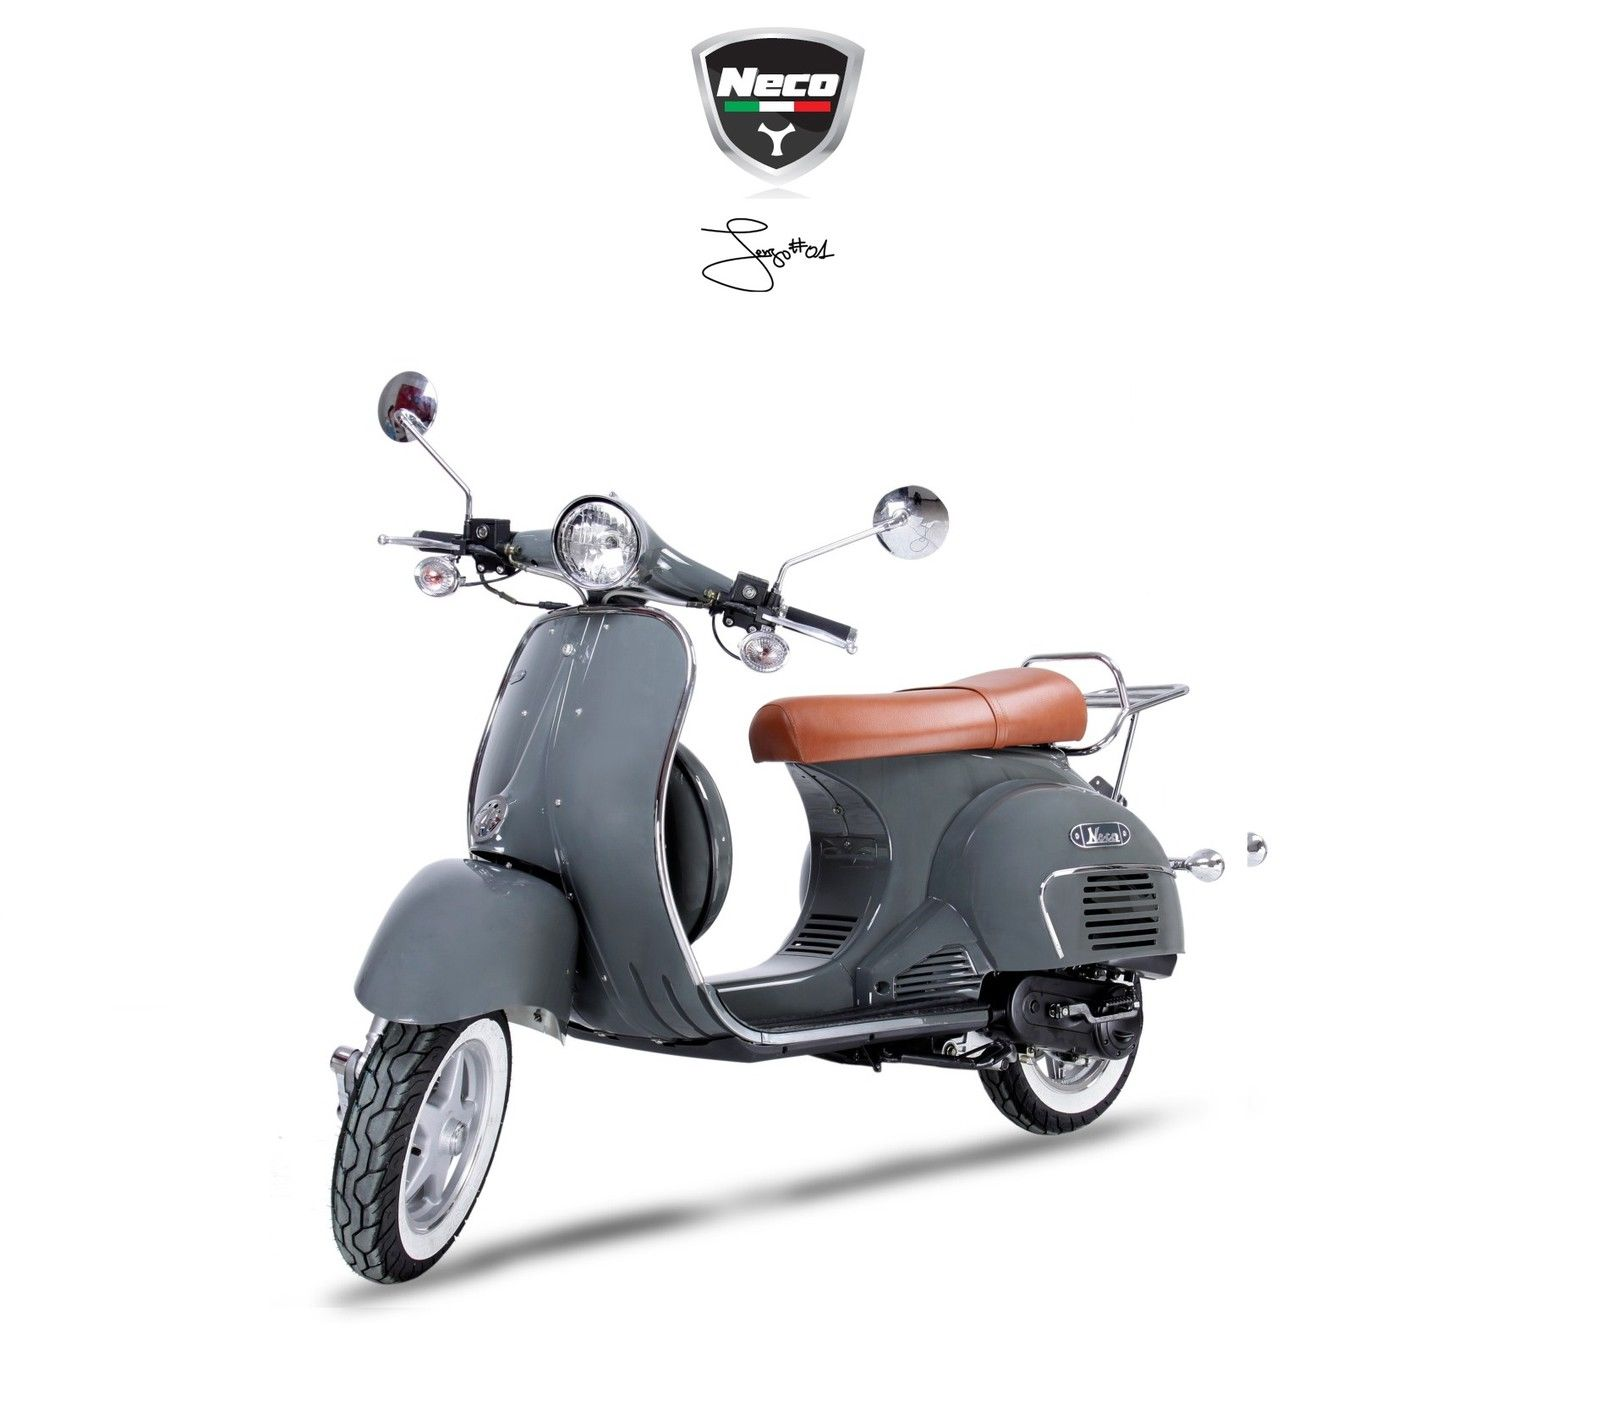 new neco abruzzi 125cc vespa lml lambretta style scooter. Black Bedroom Furniture Sets. Home Design Ideas